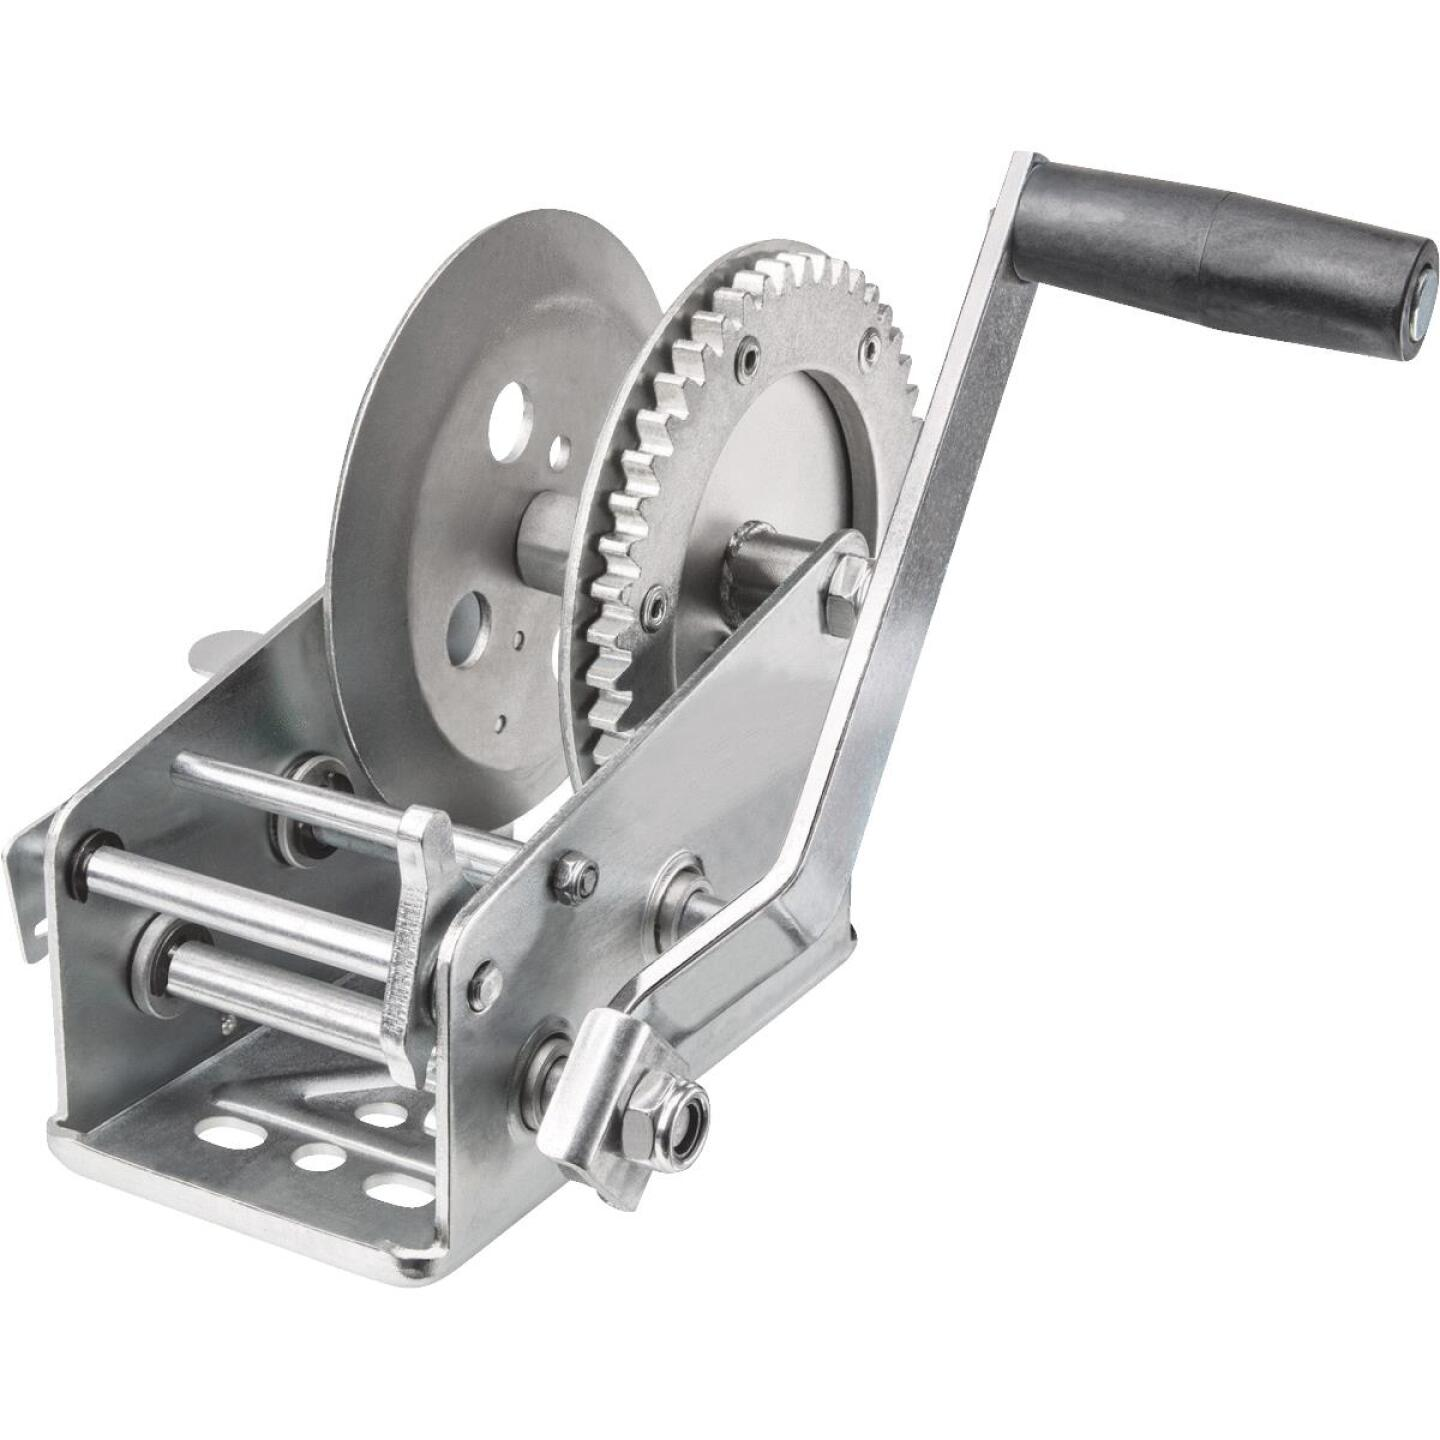 Reese Towpower 1800 Lb. Two-Speed Hand Winch Image 1